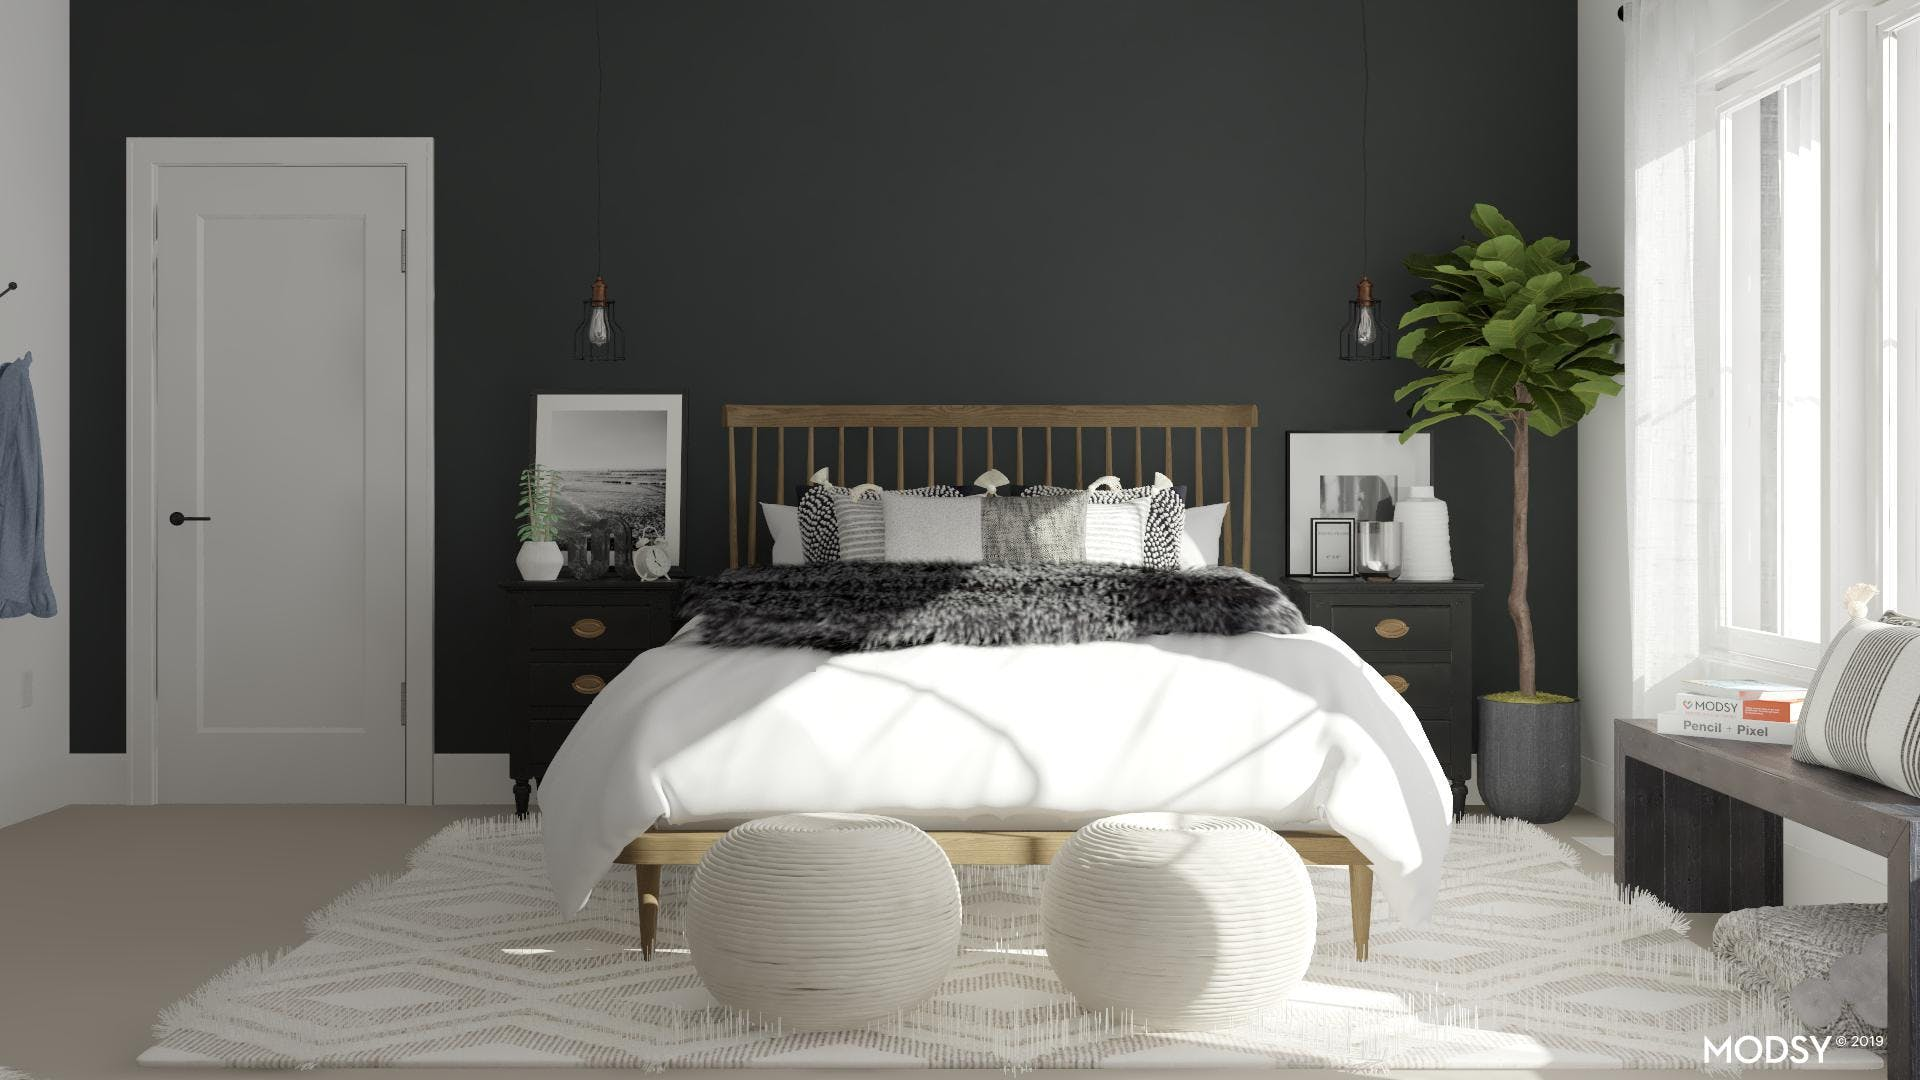 Black And White And Chic: Bedroom